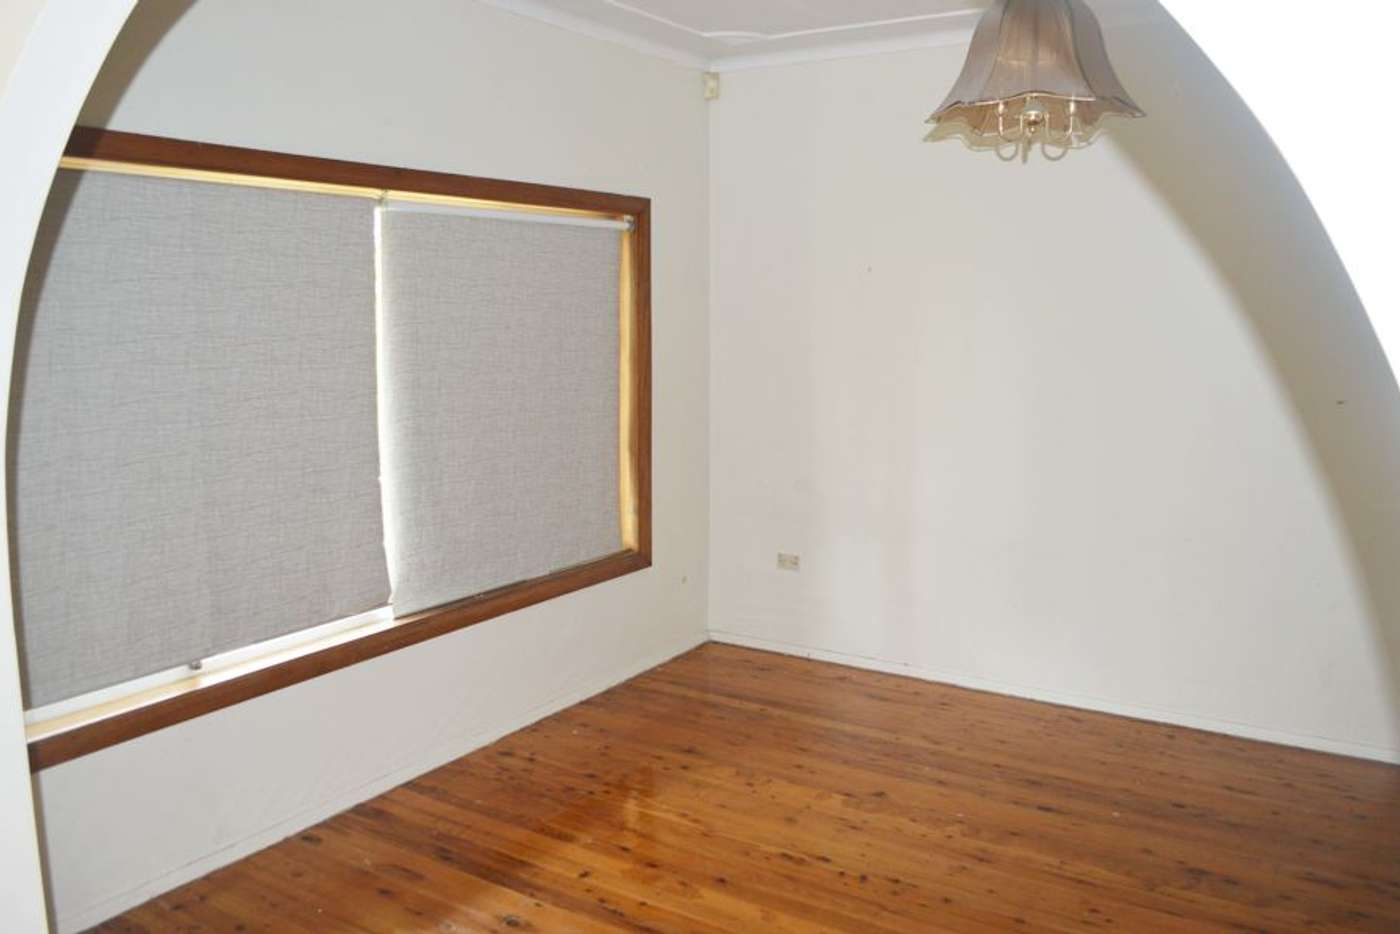 Sixth view of Homely house listing, 6 Crosby st, Greystanes NSW 2145